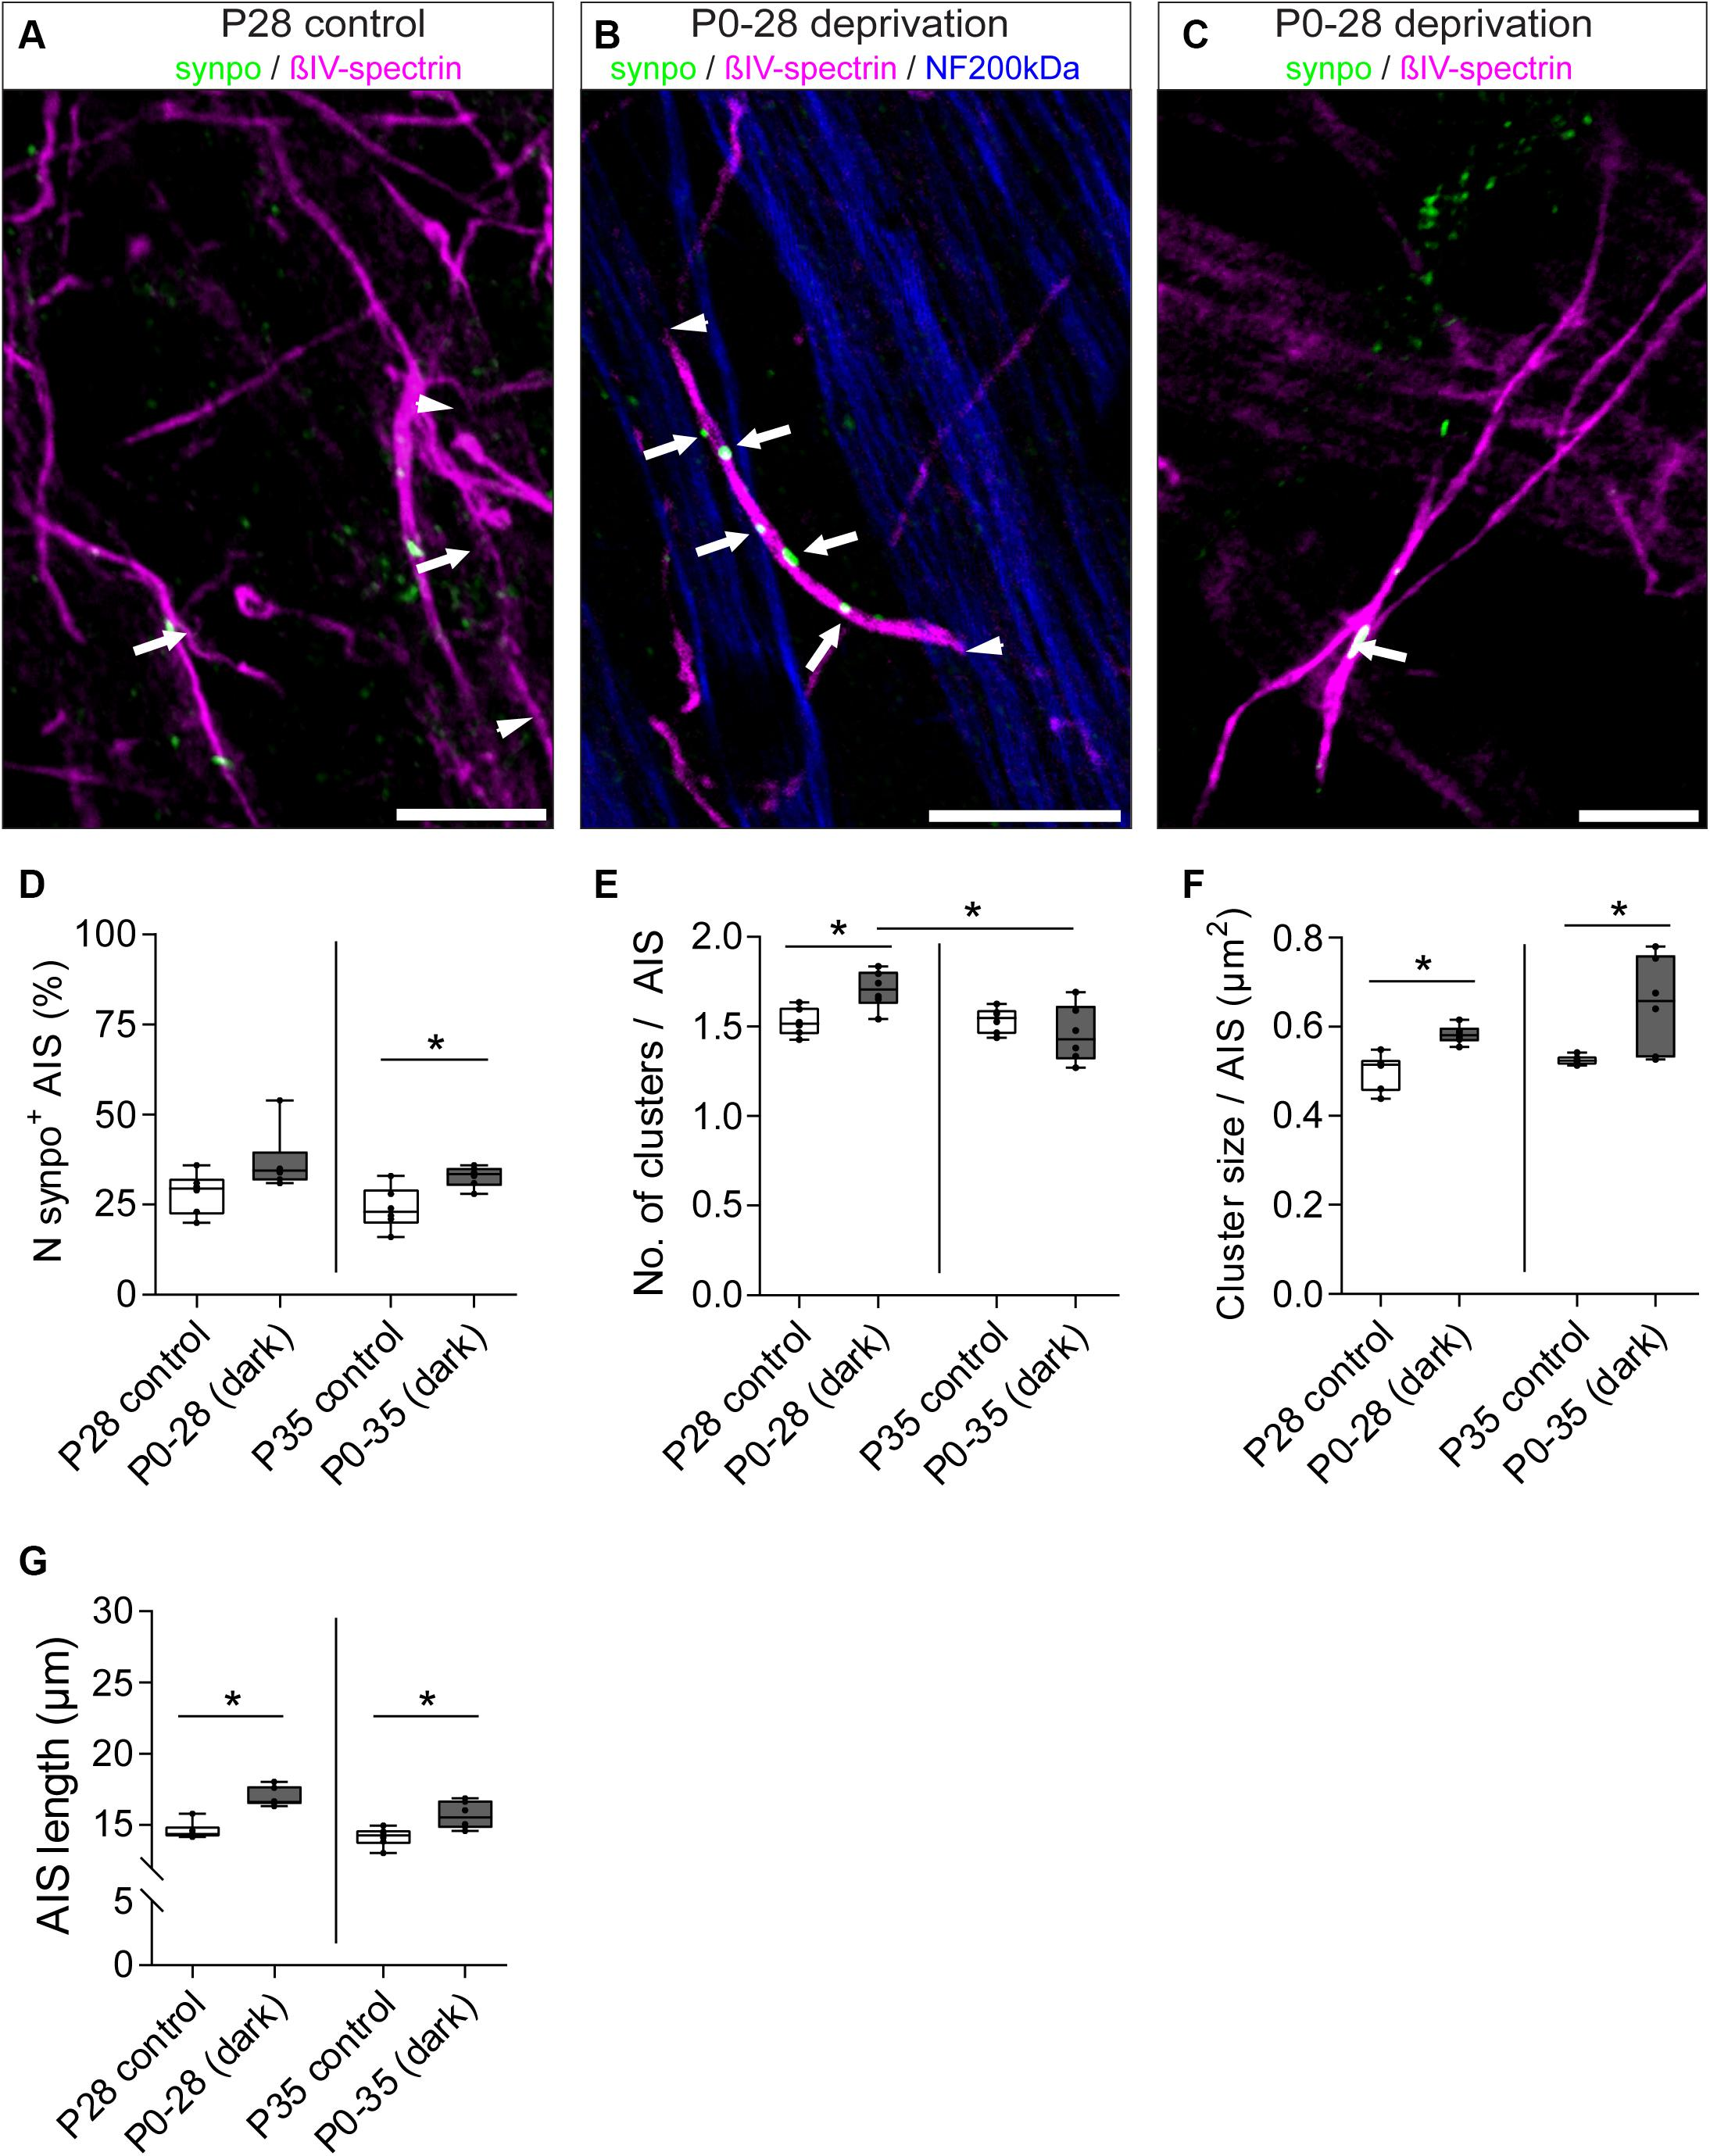 Frontiers | Dynamic Regulation of Synaptopodin and the Axon Initial